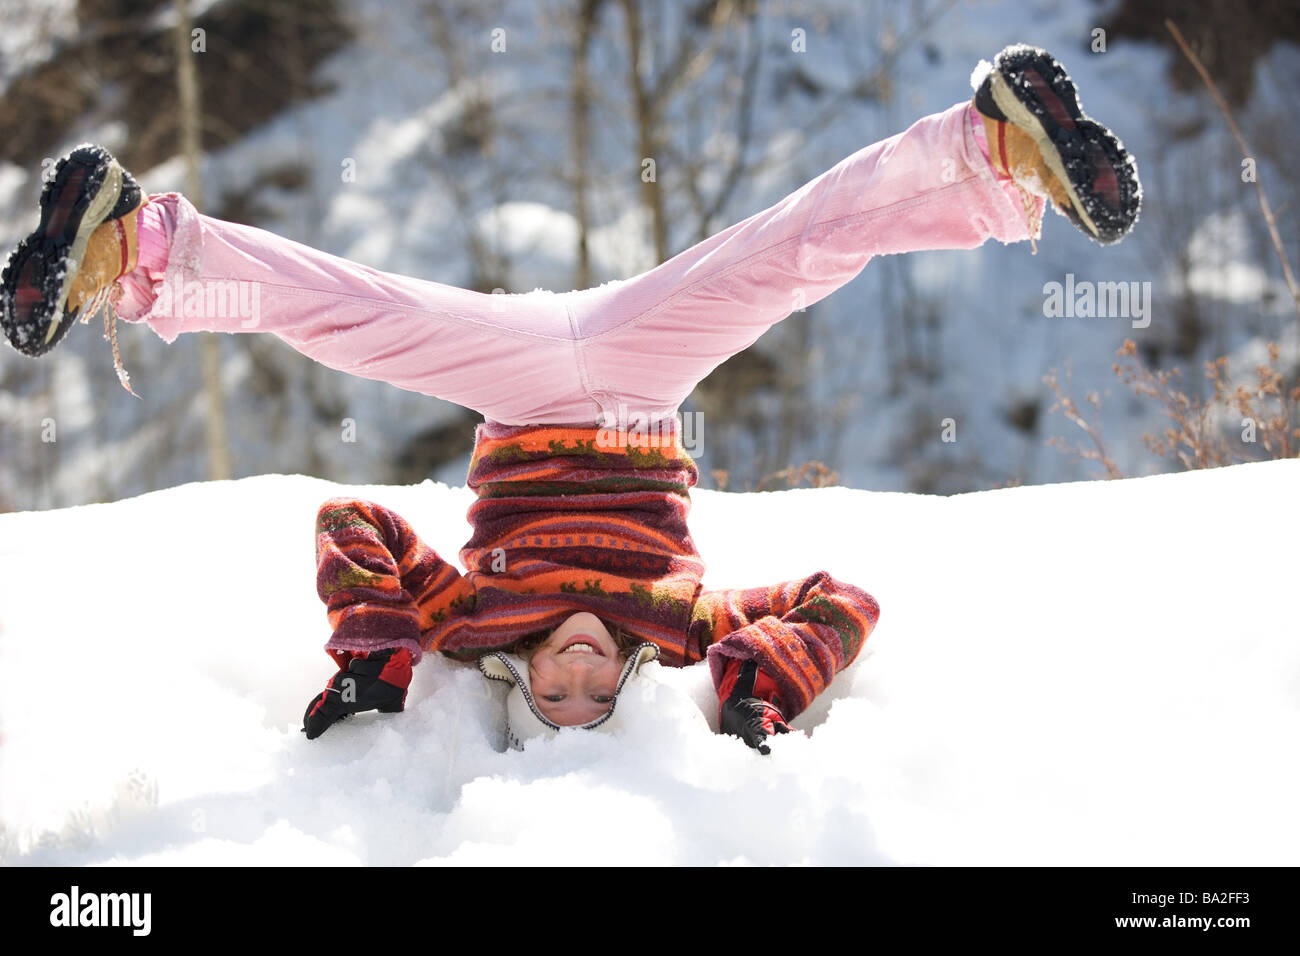 Girls cap winter-clothing headstand snow omitted winters leisure time vacation winter-vacation vacation winter-vacation - Stock Image